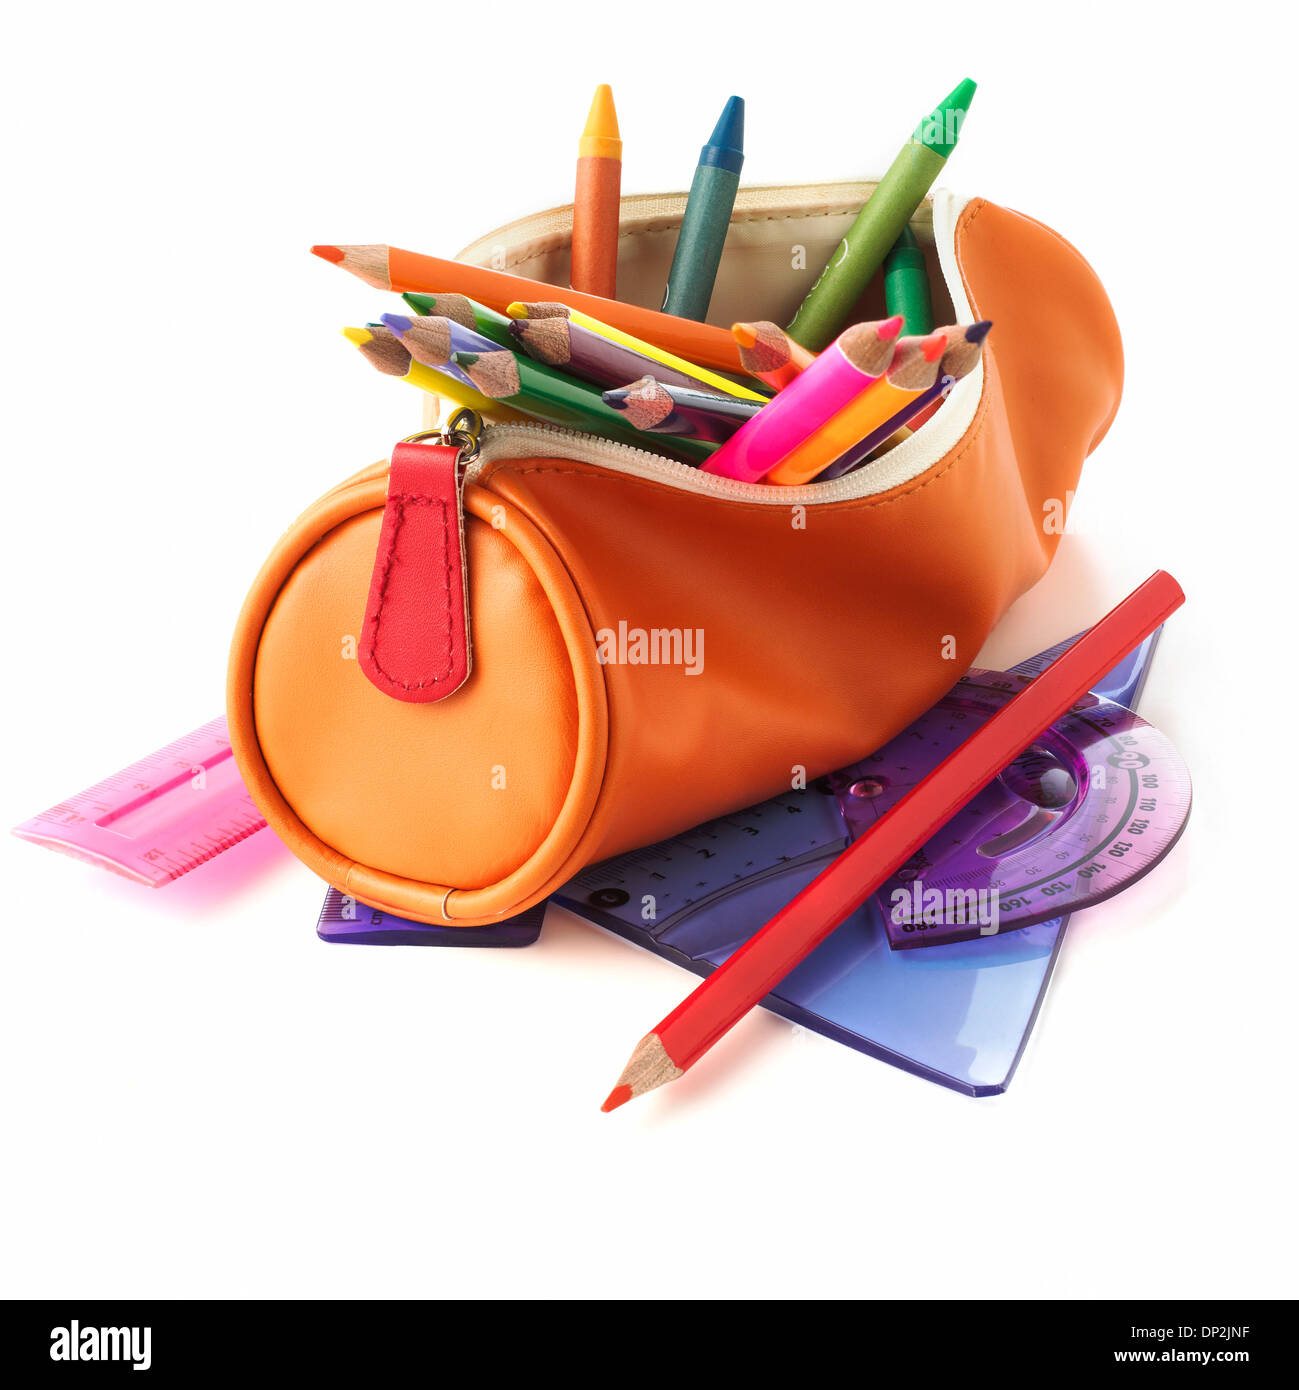 Étui à crayons plein Photo Stock